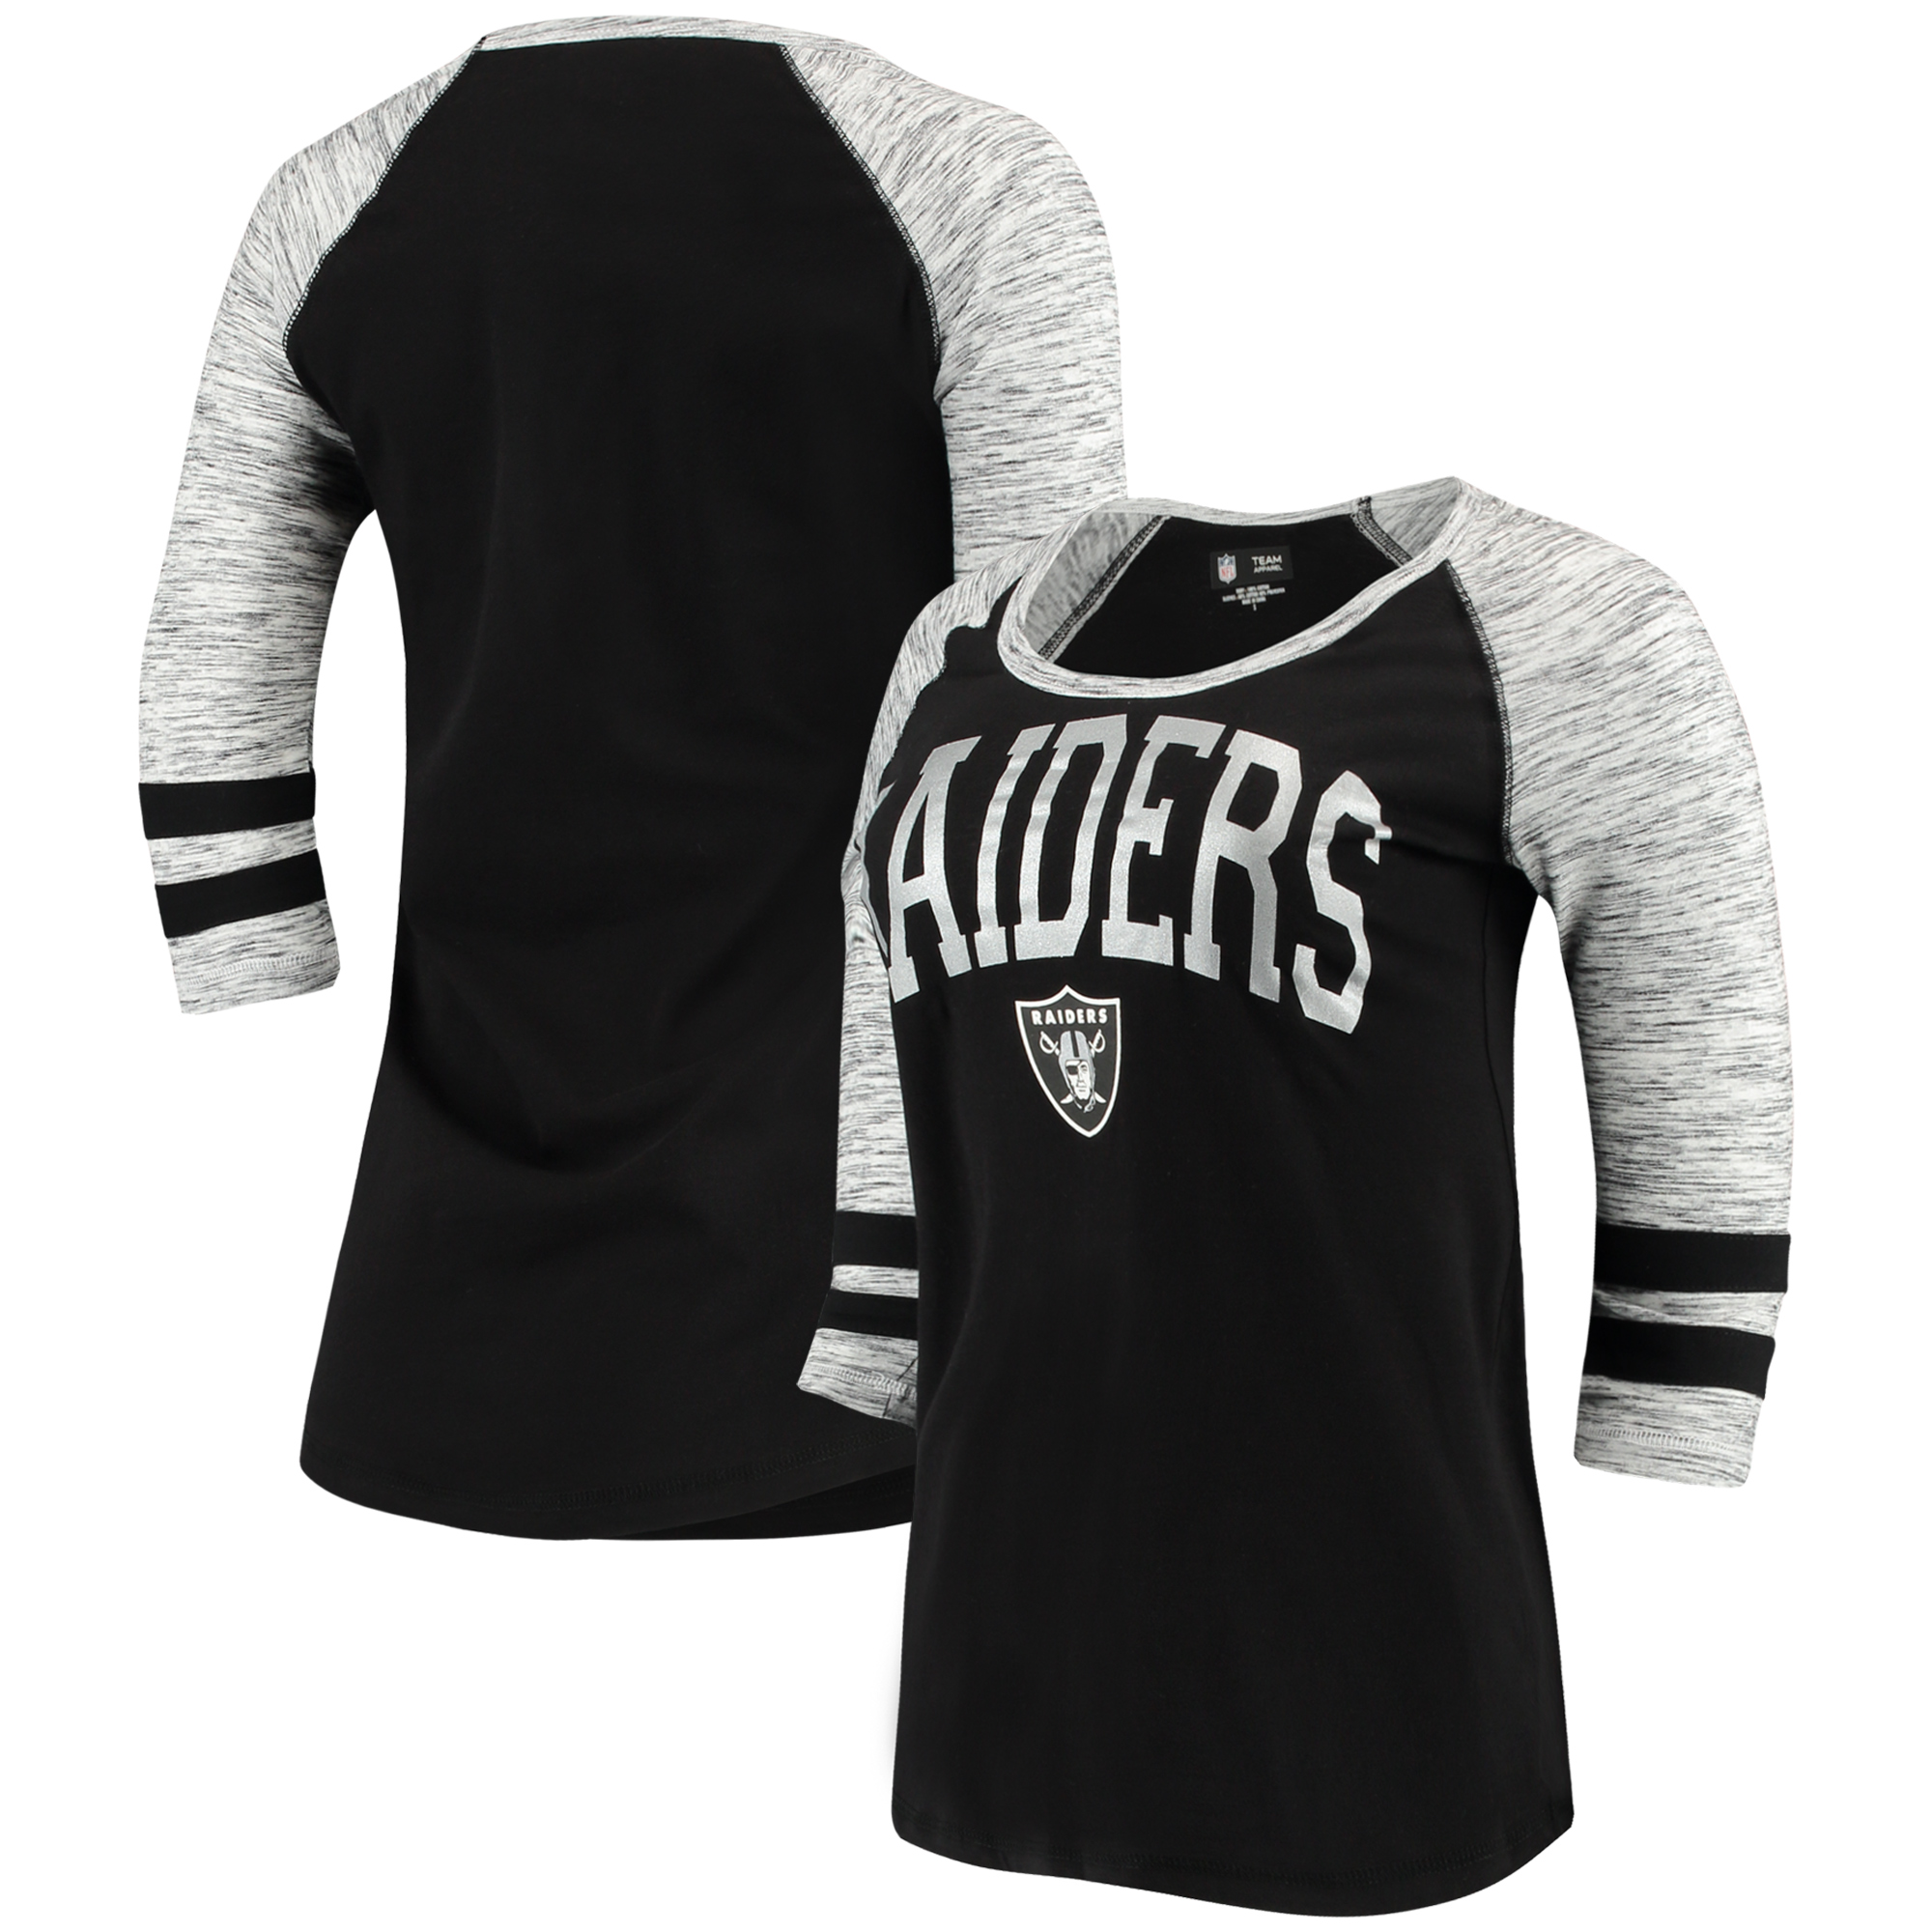 Oakland Raiders 5th & Ocean by New Era Women's Athletic Space Dye 3/4-Sleeve T-Shirt - Black